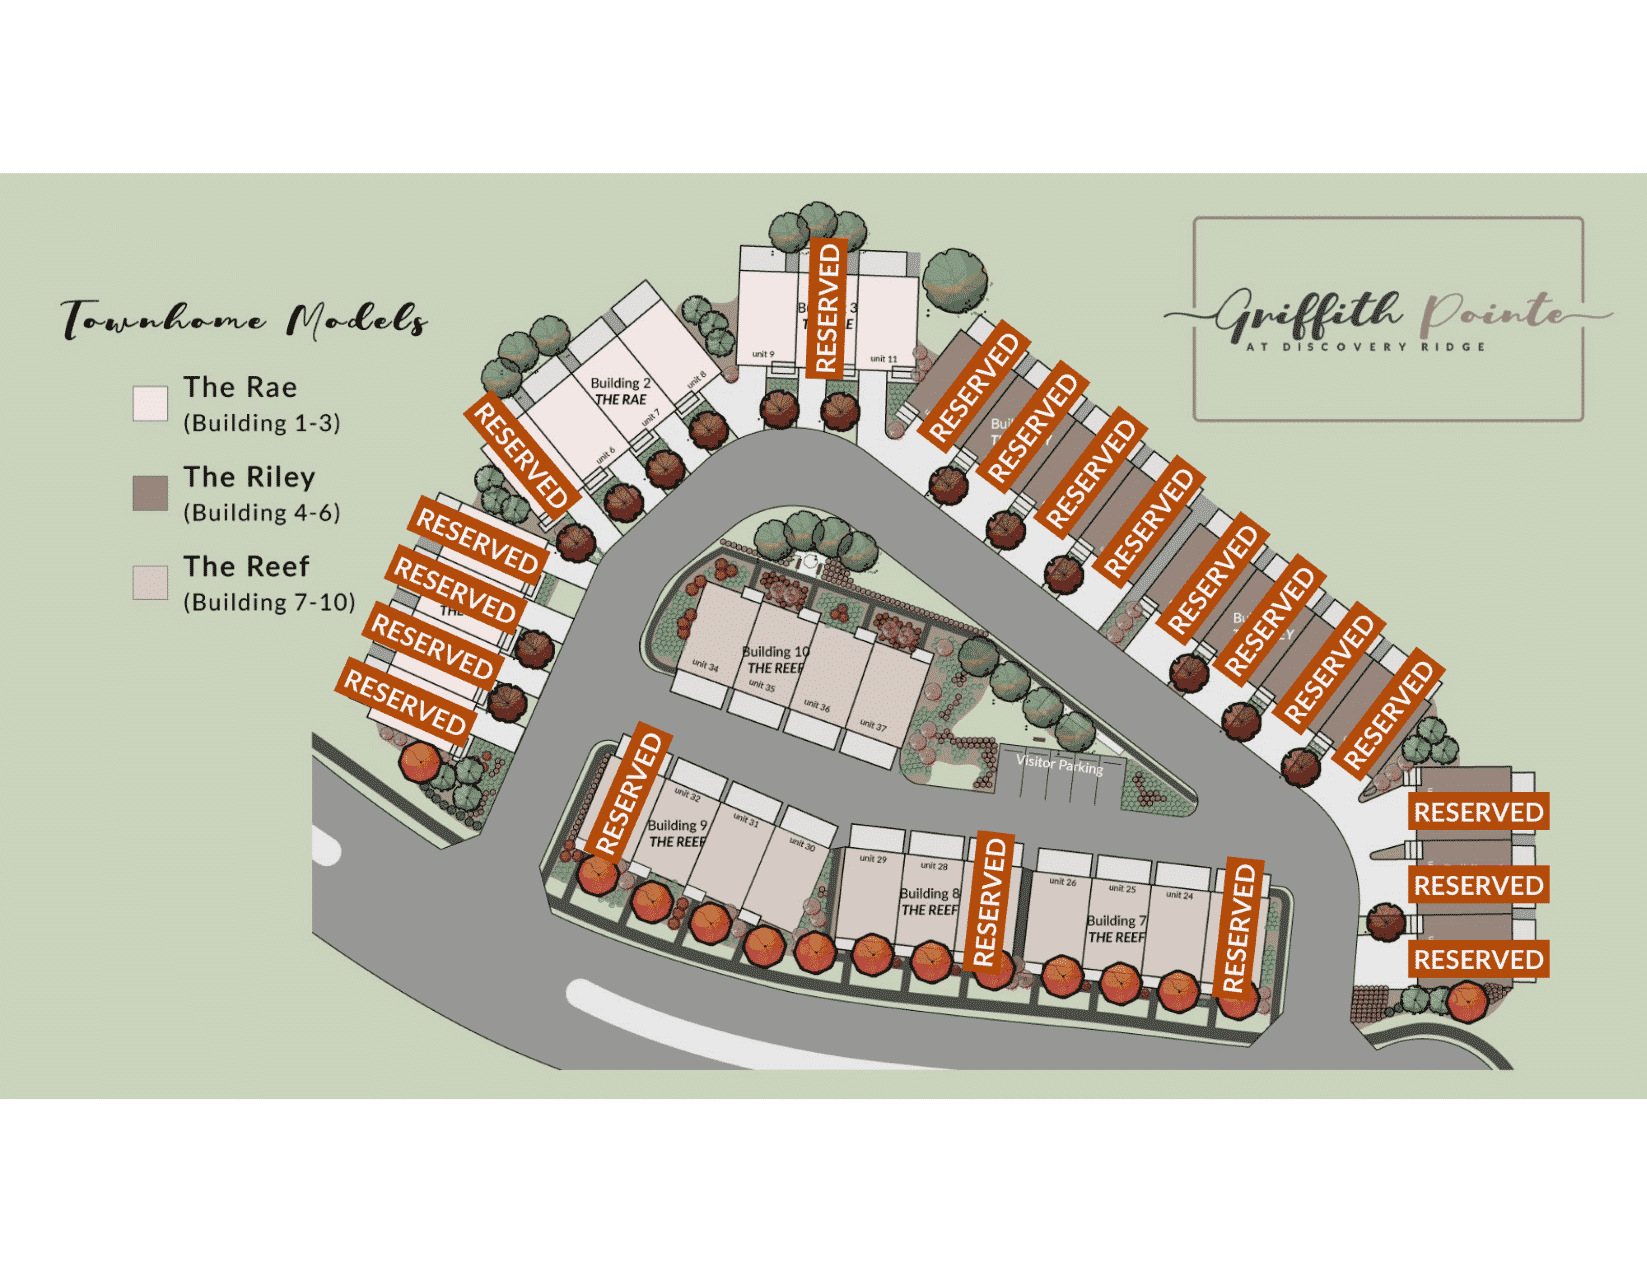 Site Plan Griffith Pointe at